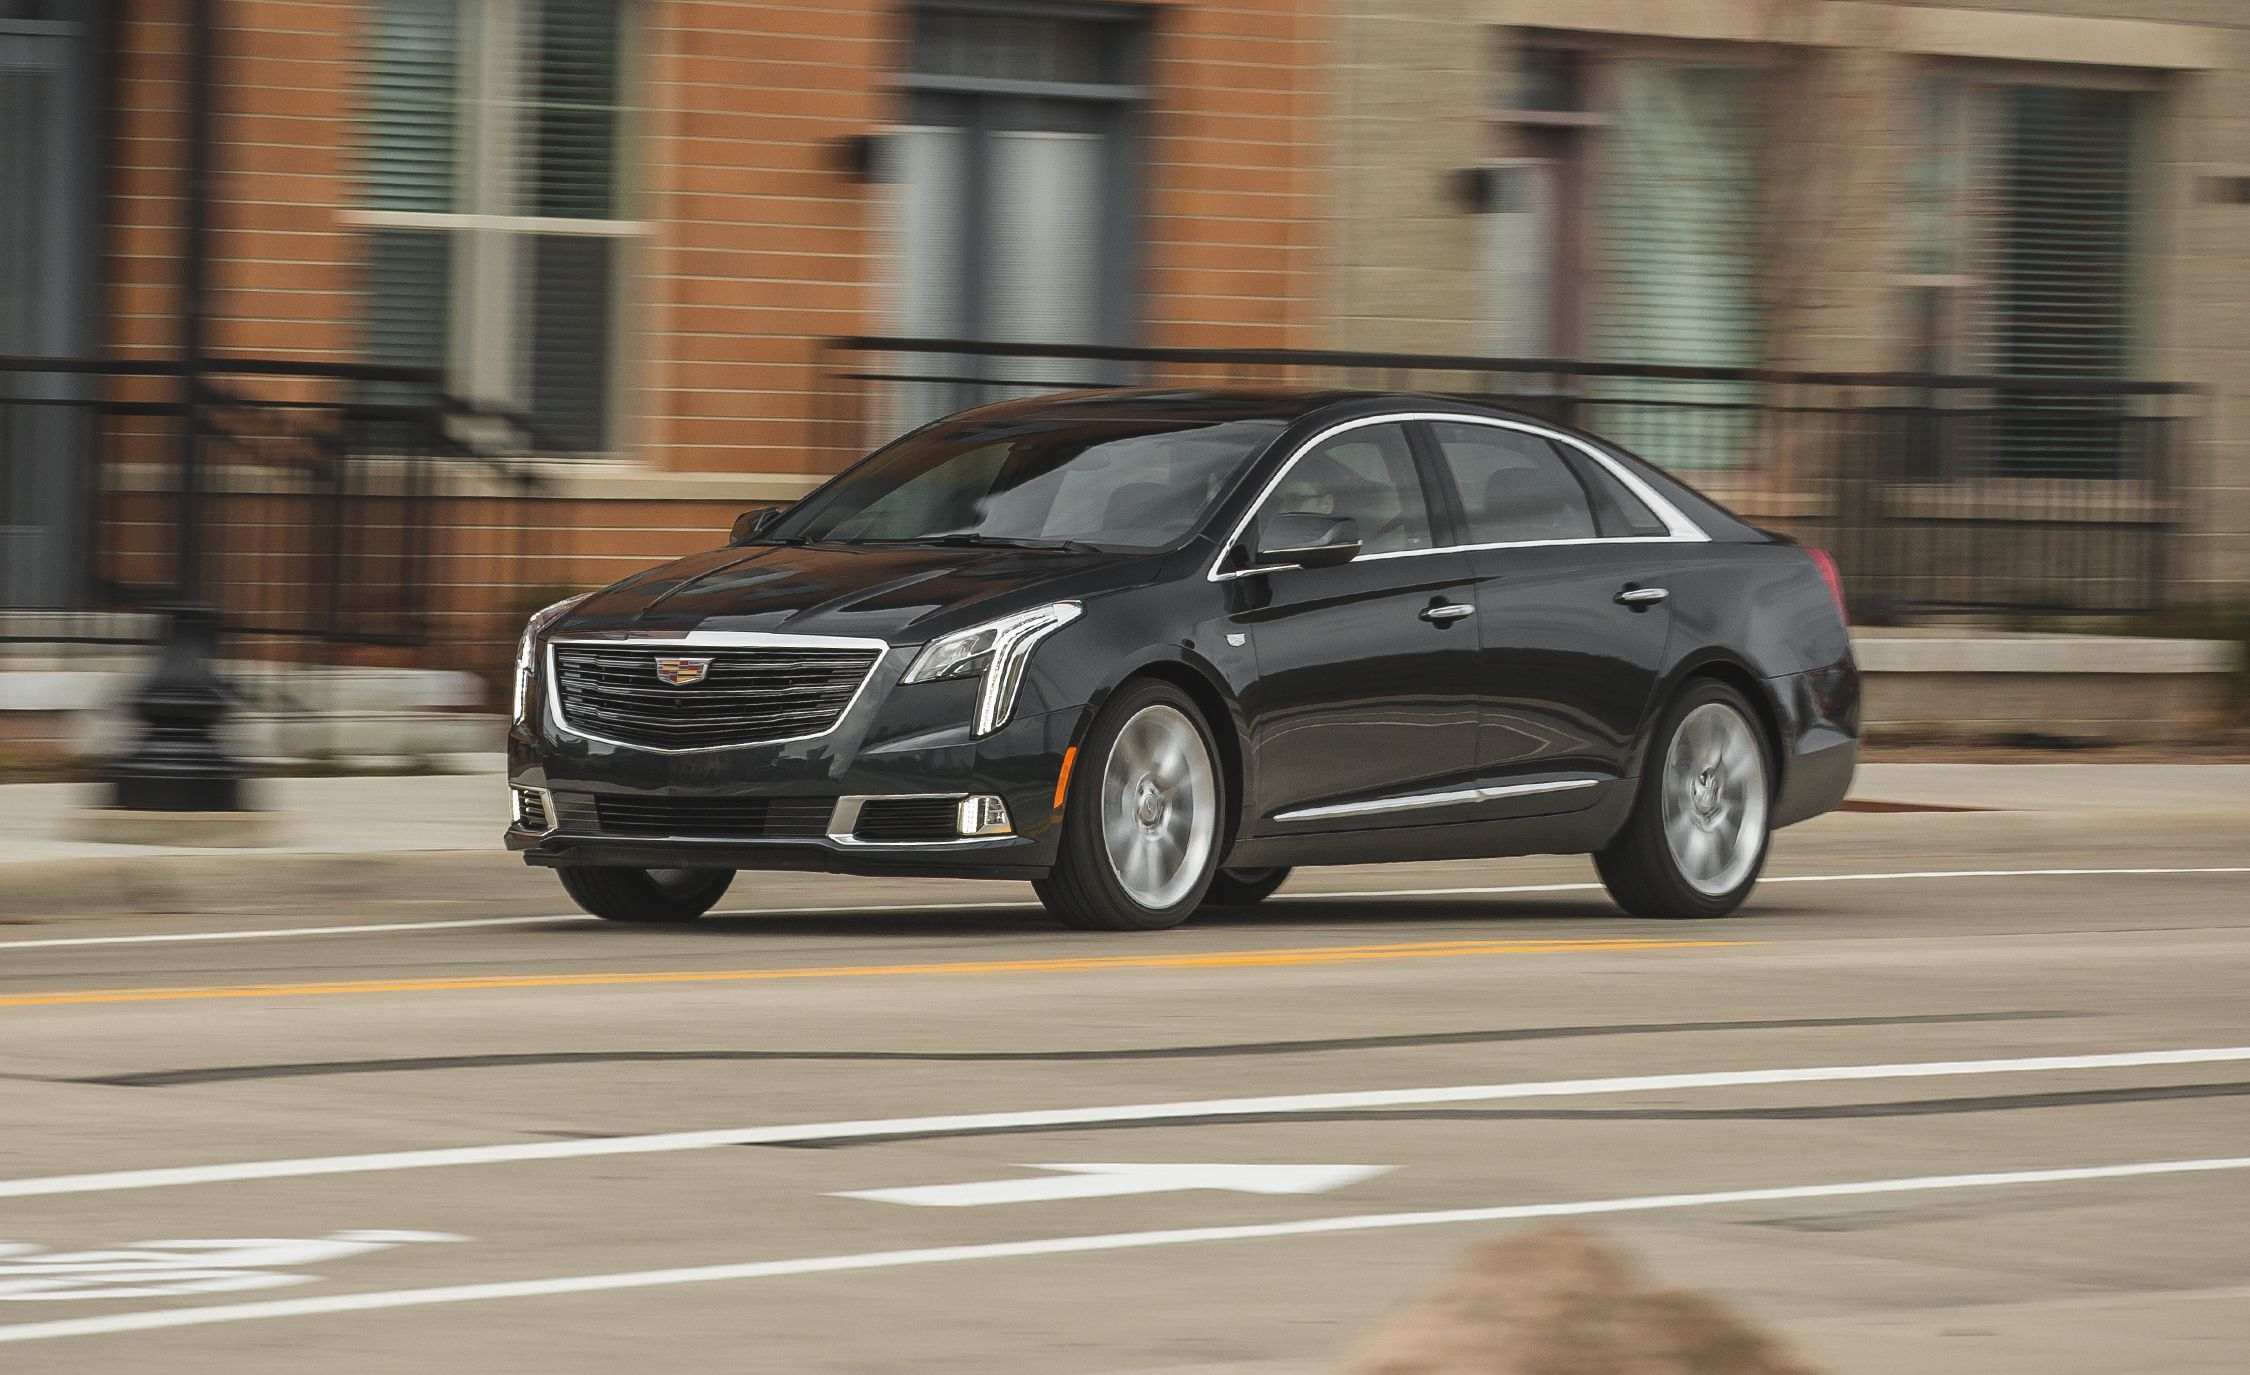 2021 Cadillac XTS Specs and Review